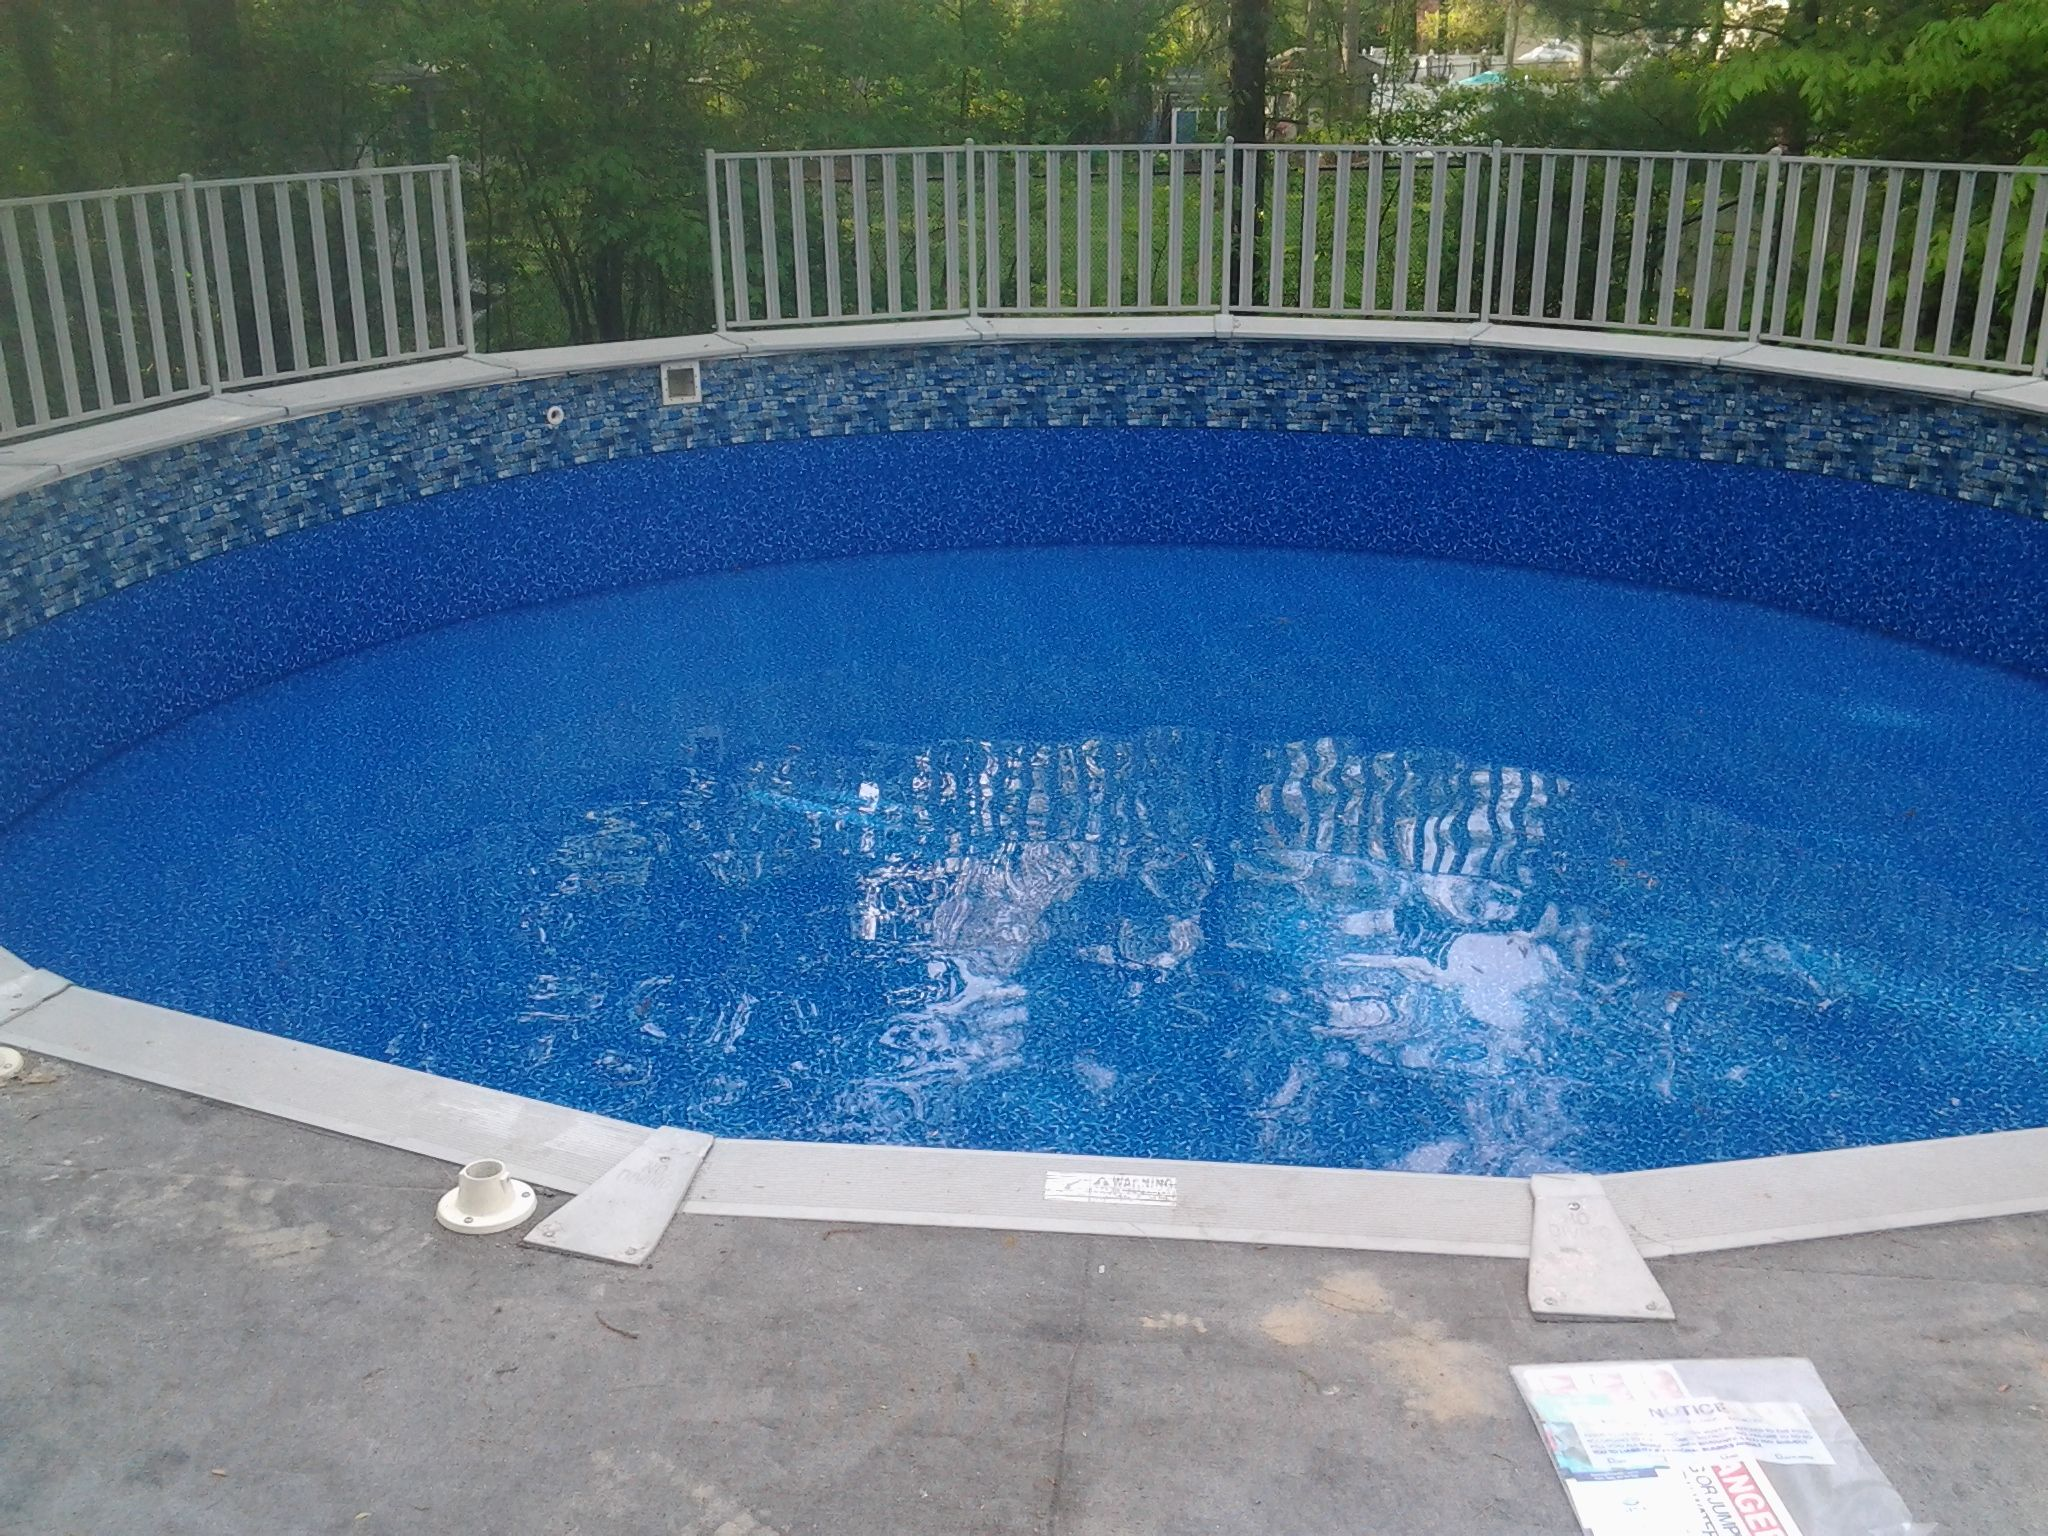 Fieldstone liner replacement in rockland ma june 2014 for Pool installation